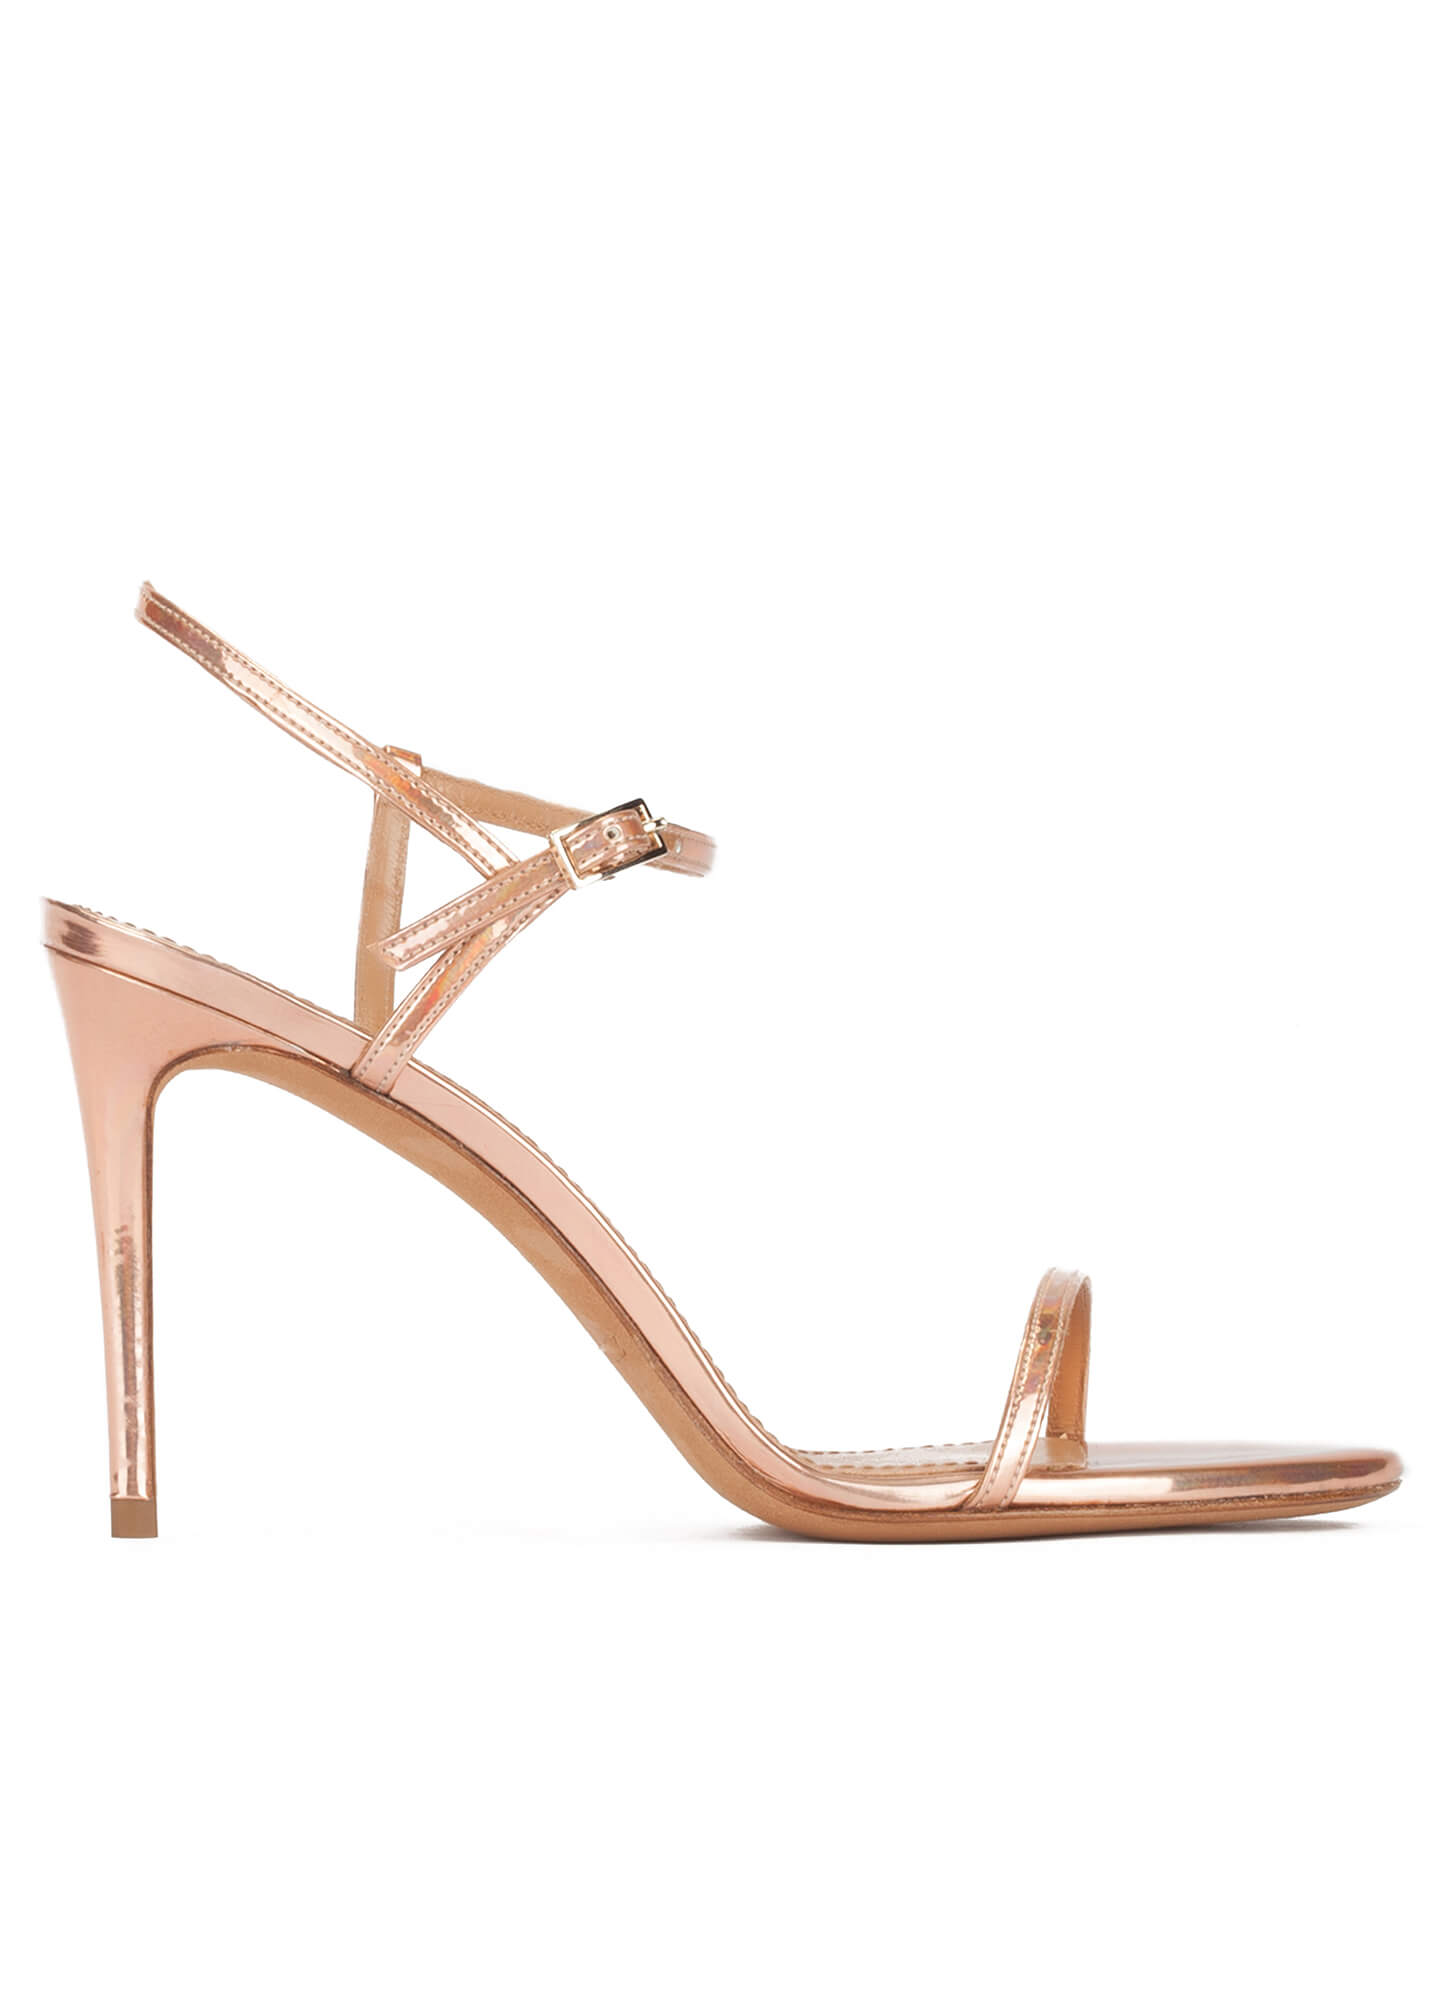 Heel Sandals Lopez Minimalist Design Rose LeatherPura High In Gold SUjqVGLzMp